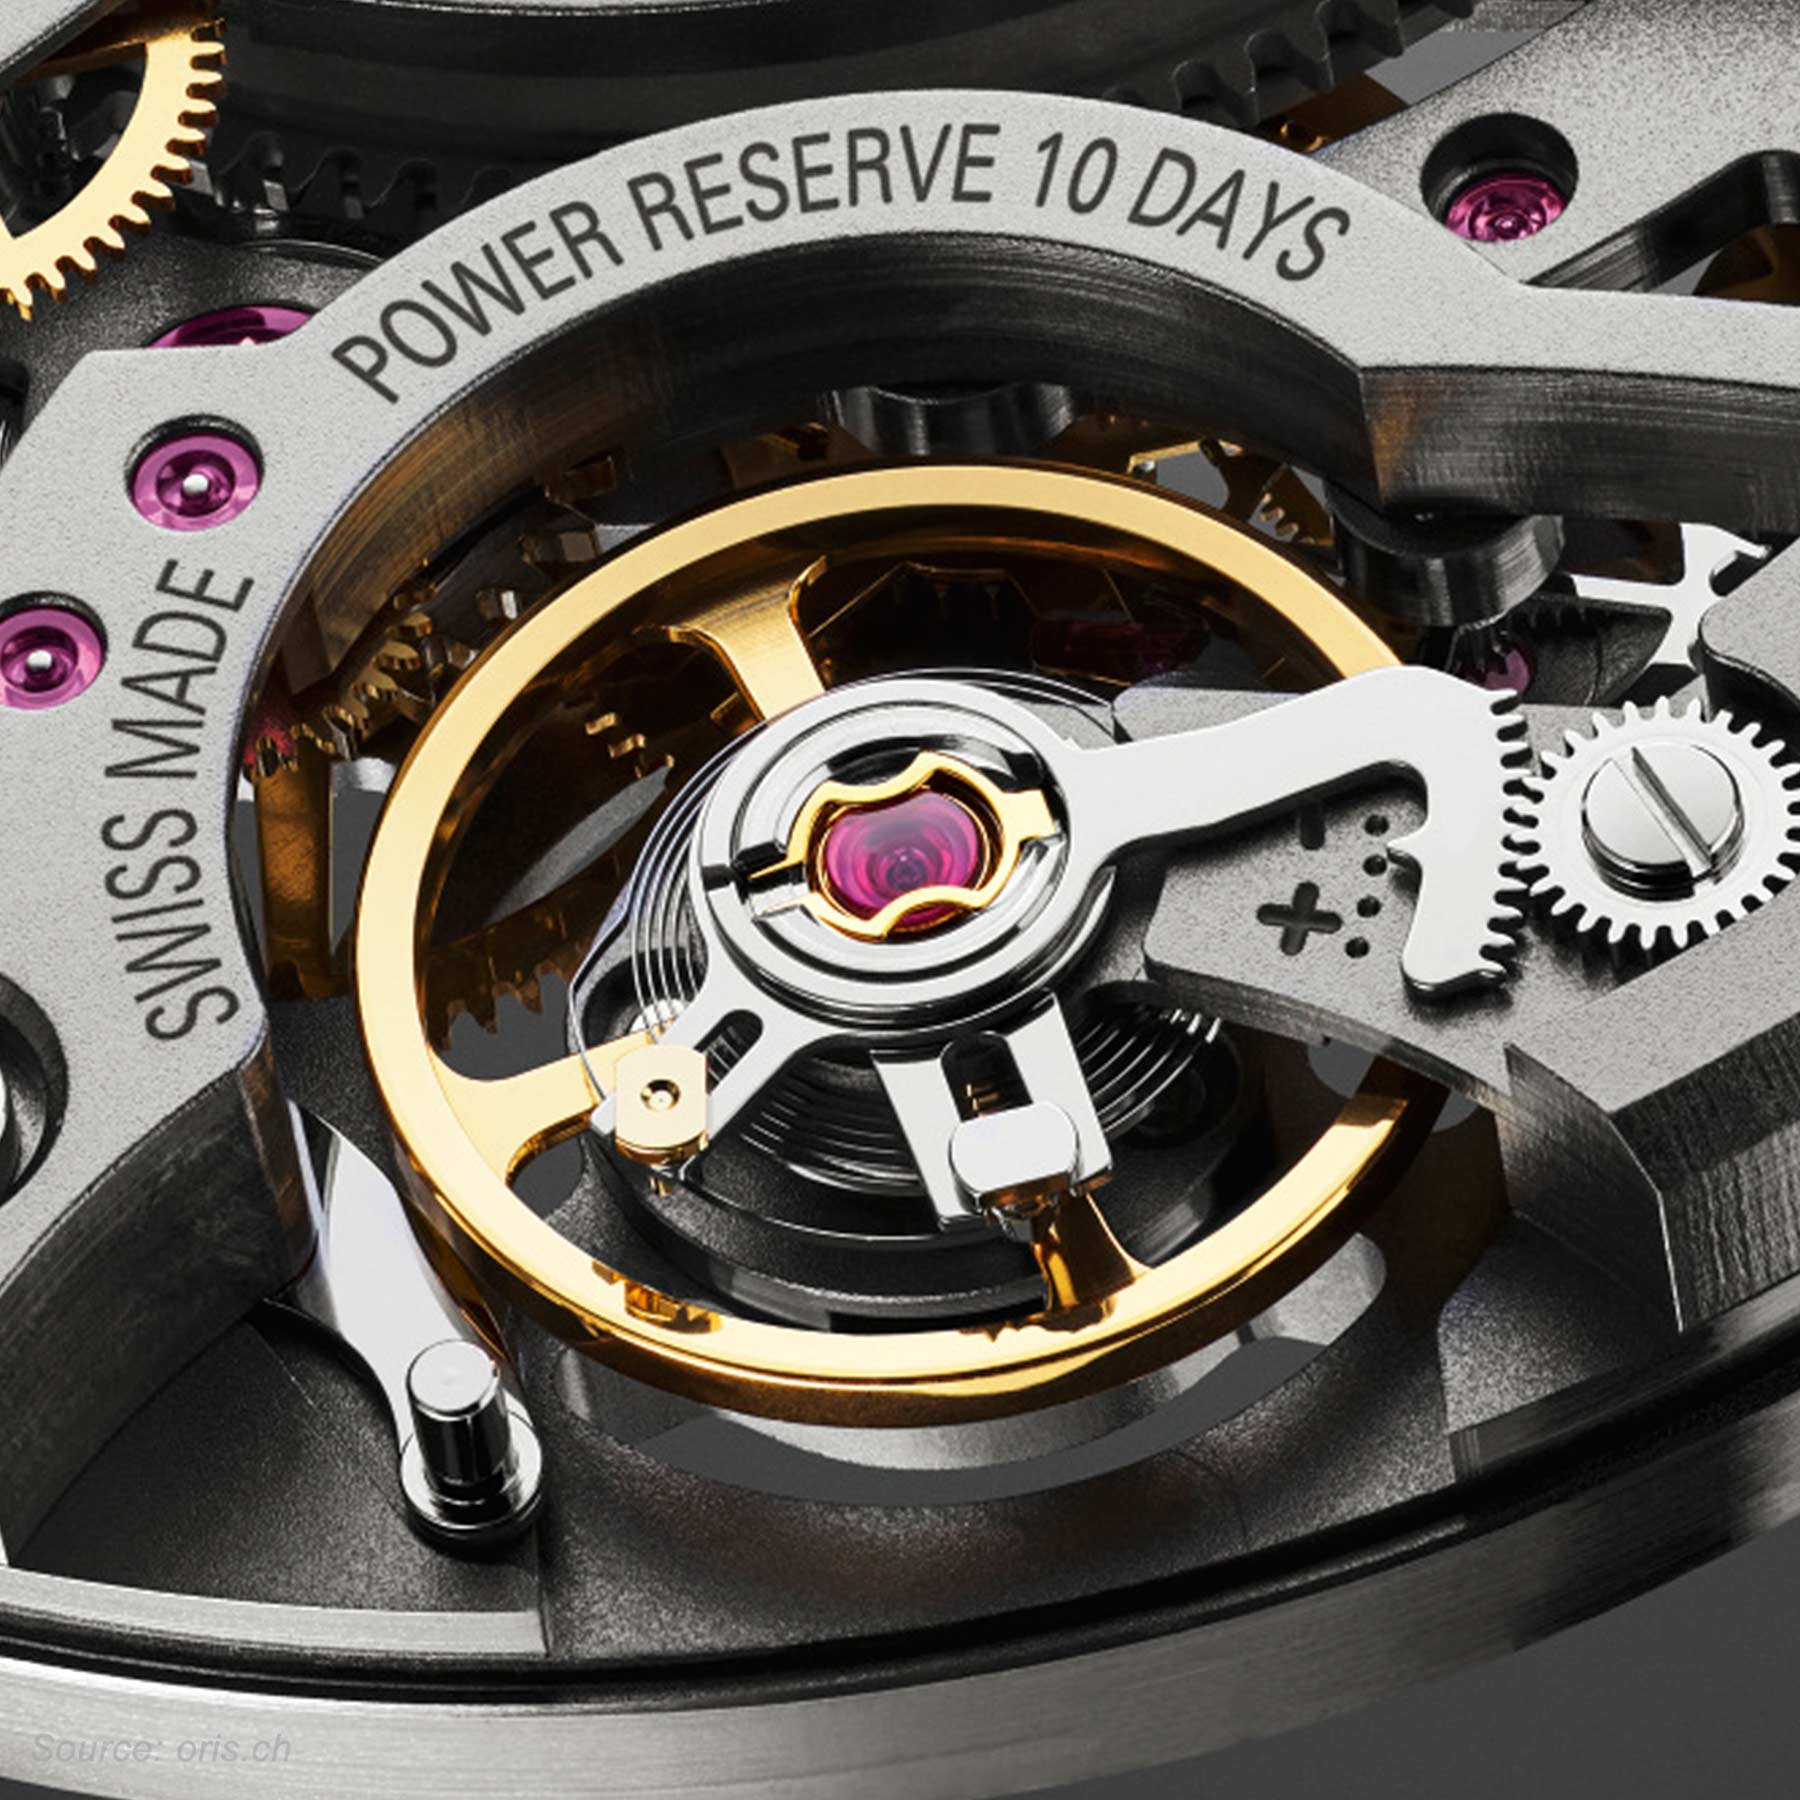 Oris Caliber 115 Balance Wheel